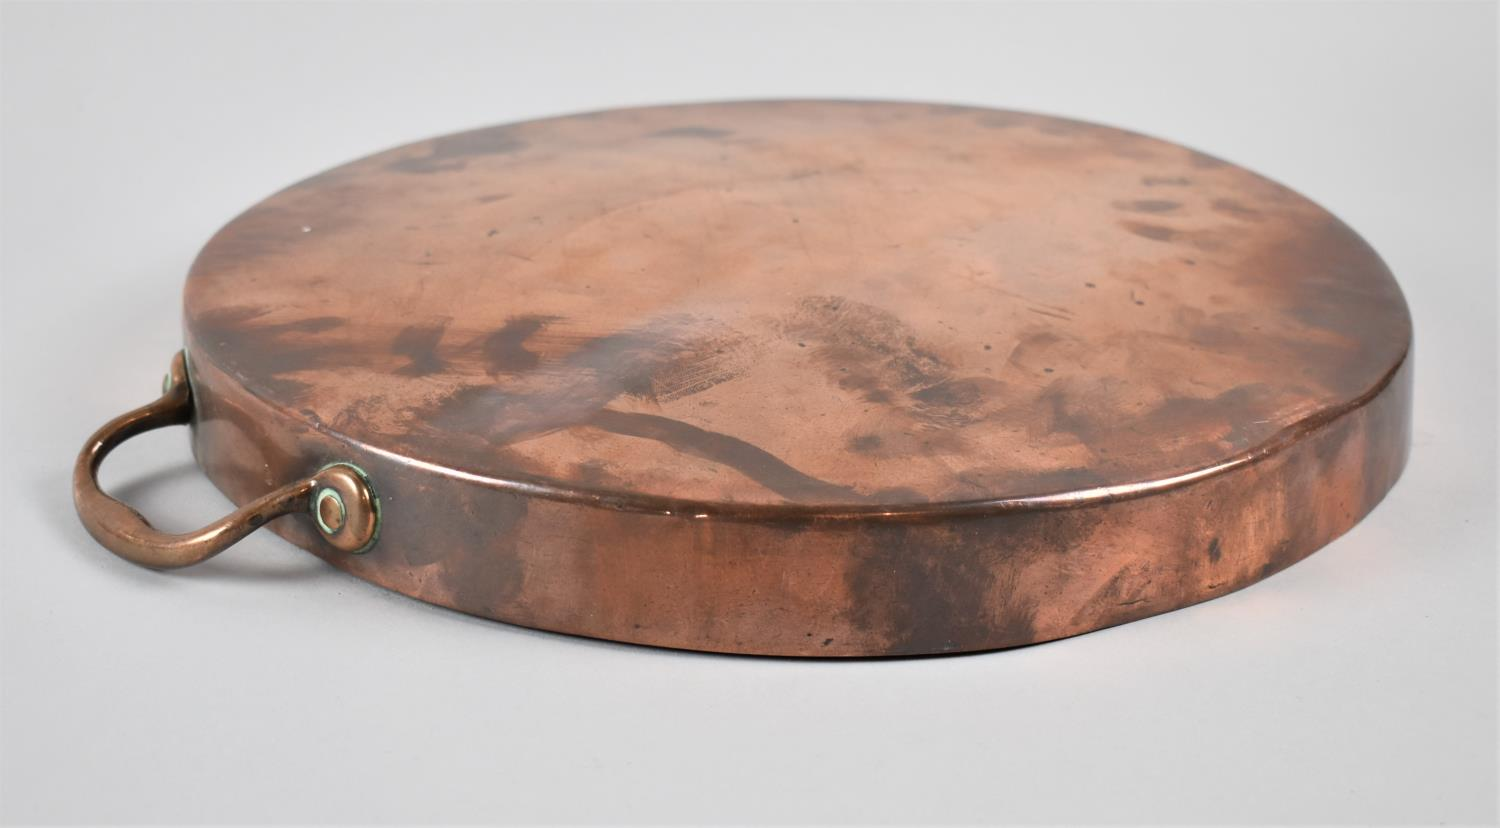 A Victorian Copper Saucepan Lid with Two Handles, 35.5cm Diameter - Image 2 of 3